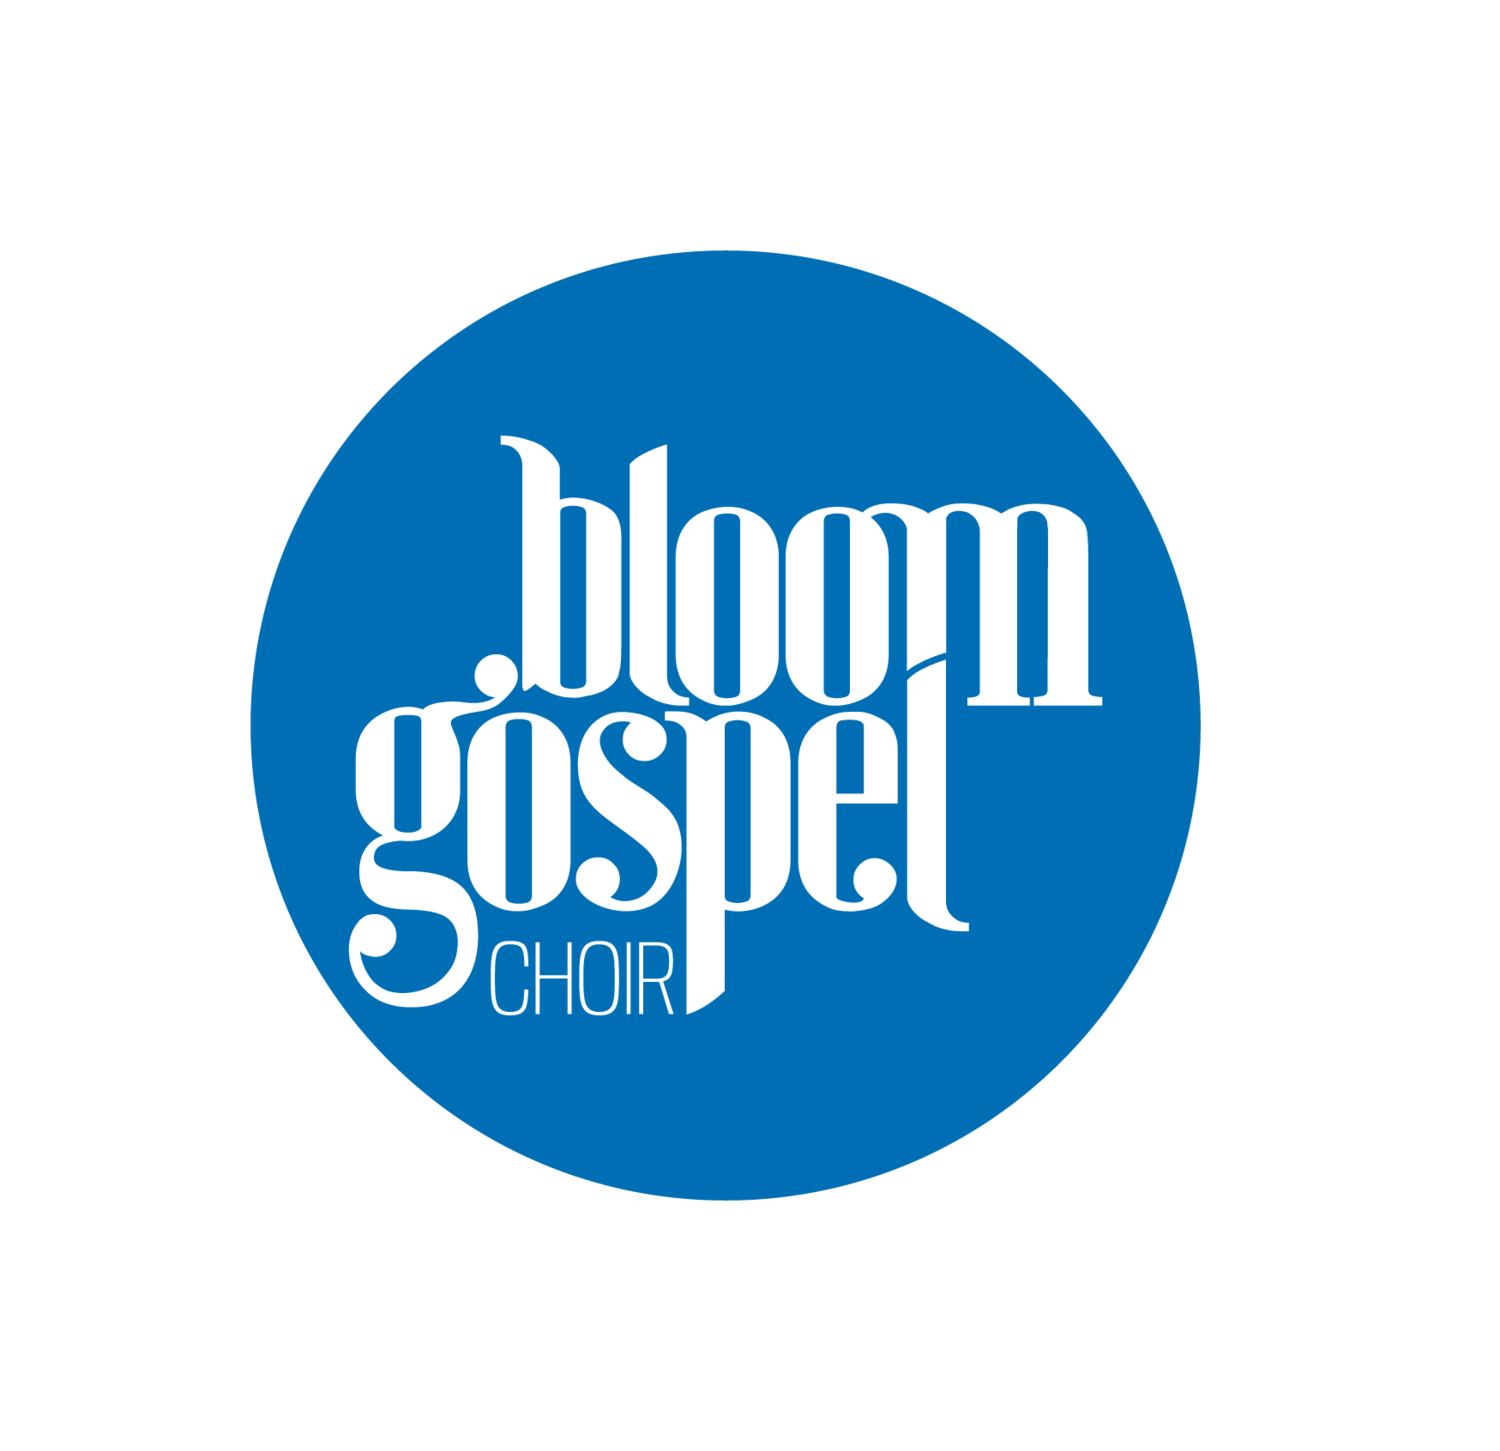 BLOOM GOSPEL CHOIR